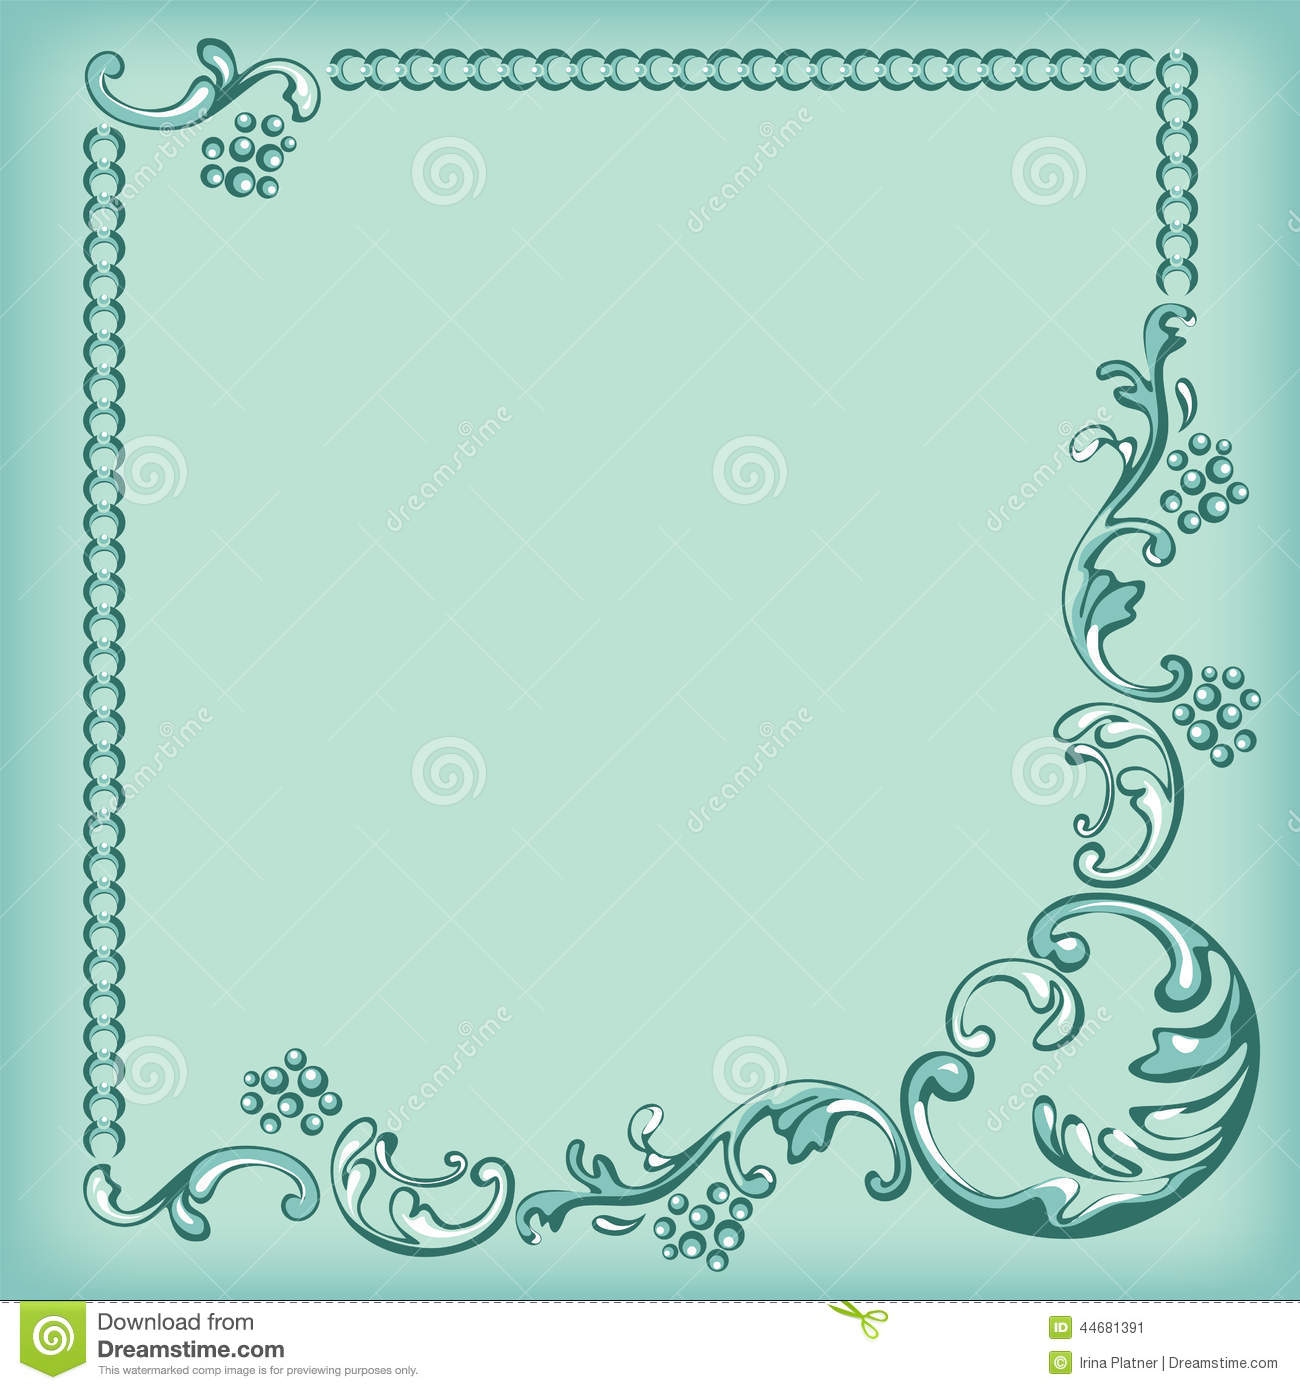 ornament frame decorative pattern on turquoise background